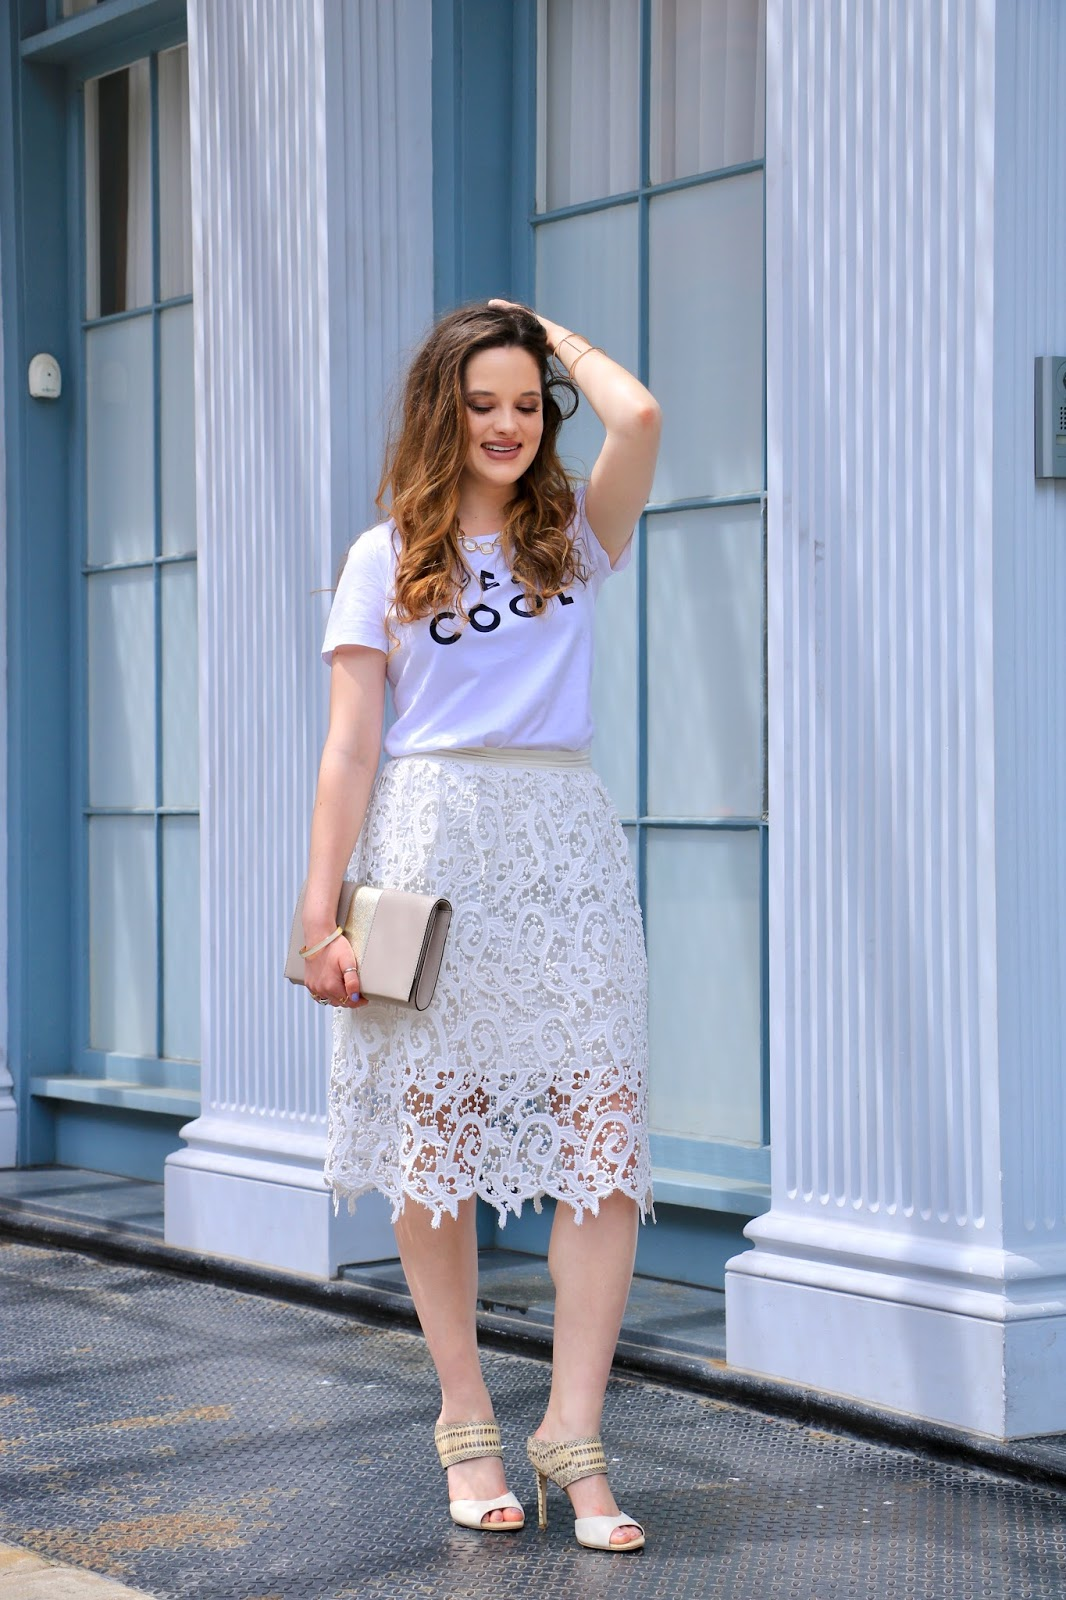 nyc fashion blogger Kathleen Harper wearing a graphic tee with a pencil skirt